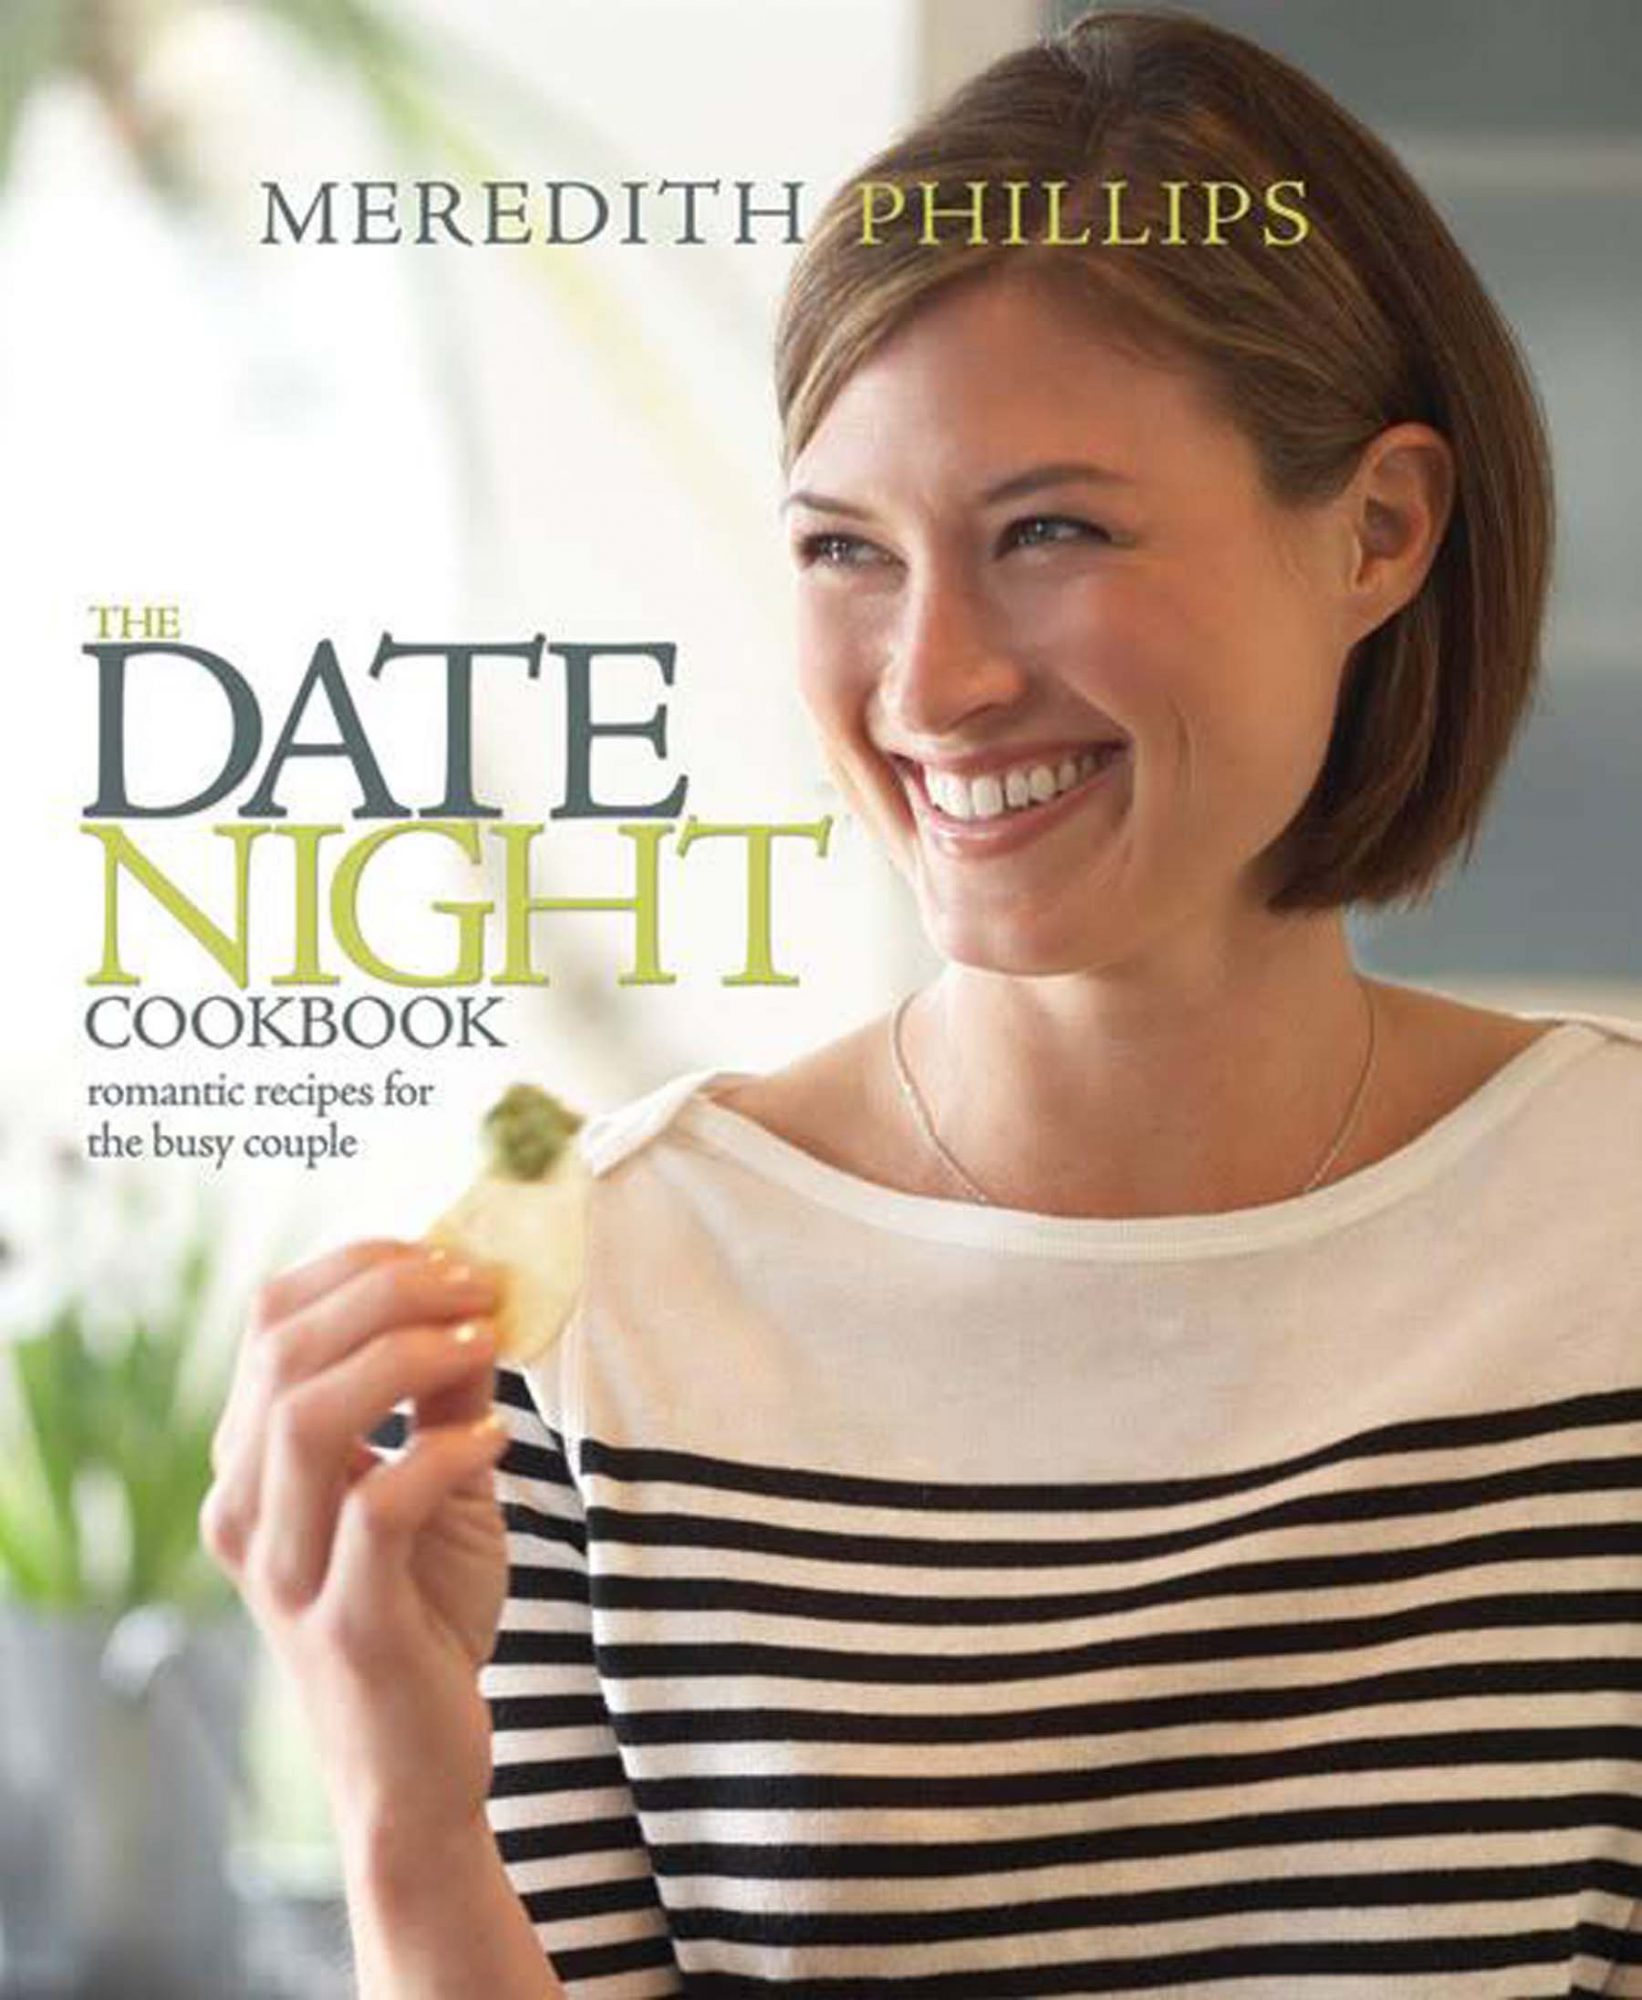 The Date Night Cookbook: 25 Easy-to-Cook Menus for The Busy Couple by Meredith Phillips